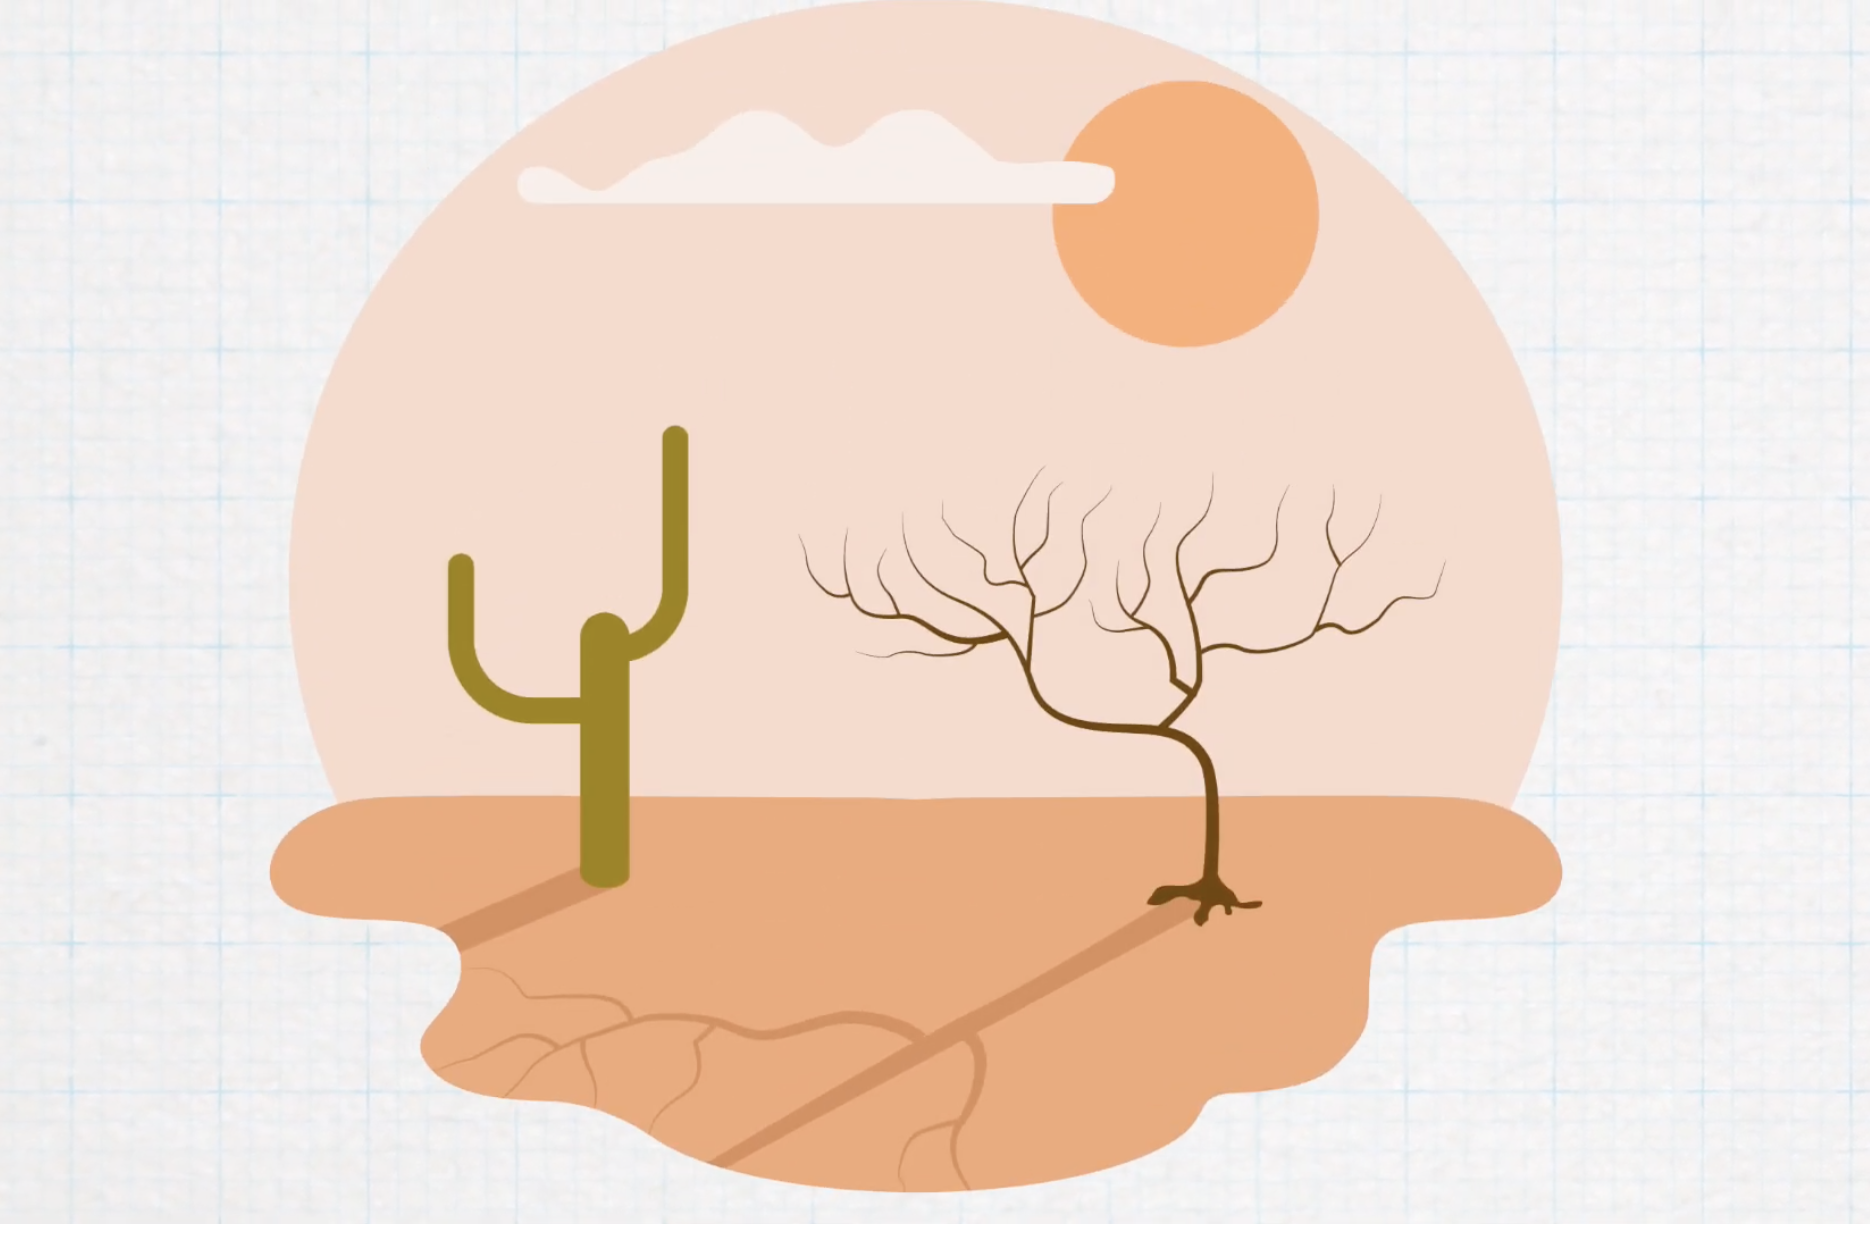 Solve It: Drought and Water Conservation - To design a solution for how your school would operate if they were given 1/3 less water to use during a drought.